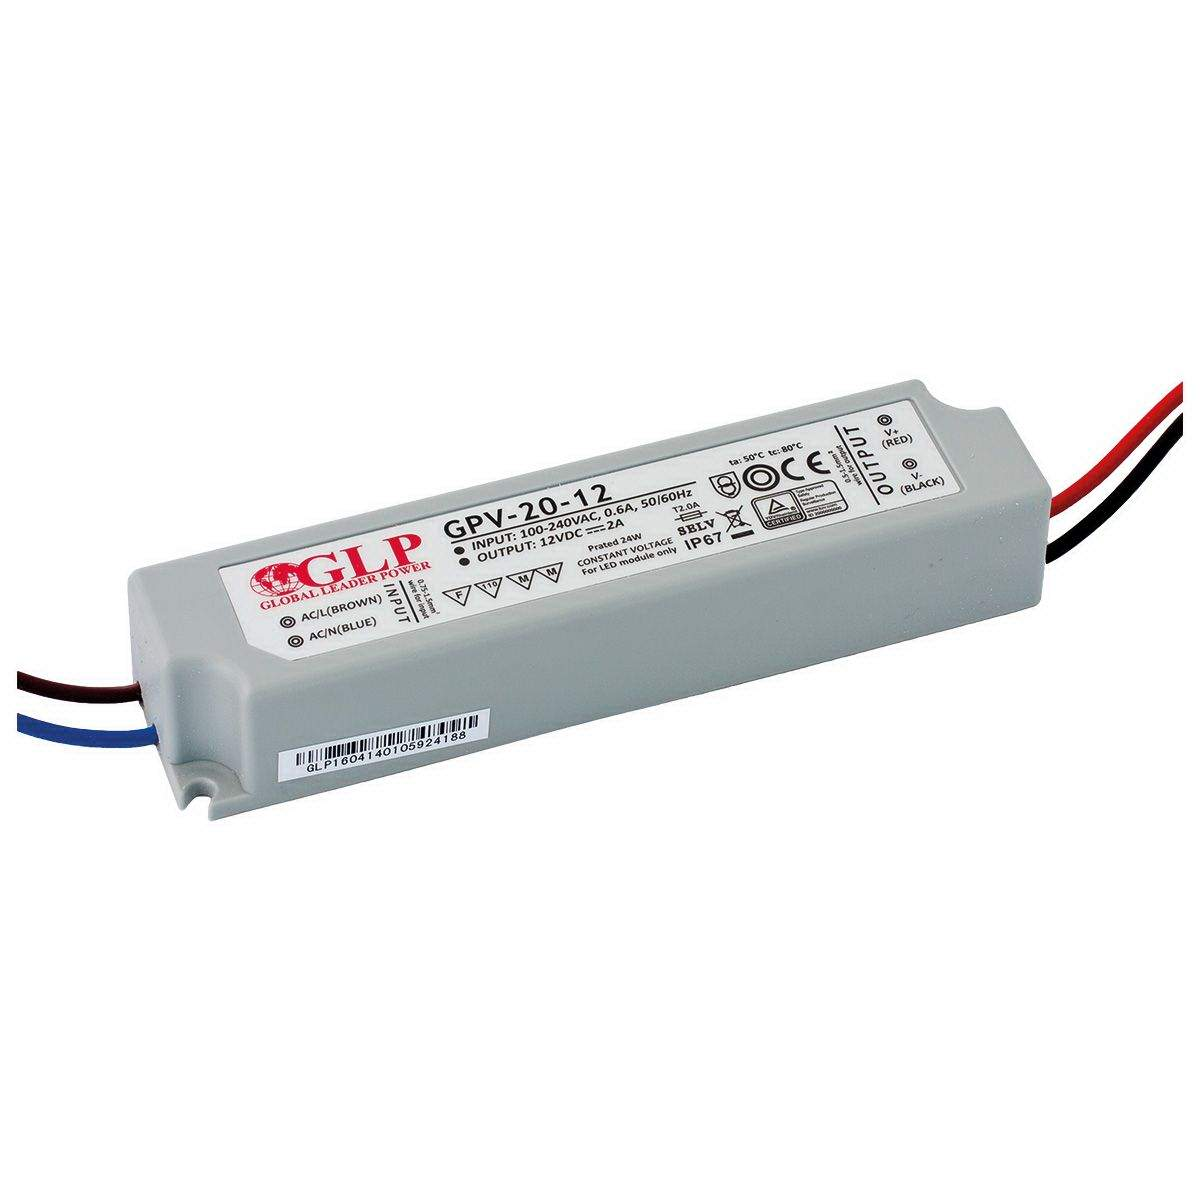 LED Toiteplokk LED Toiteplokk GLP POWER 12V DC GPV-20-12  20W  IP67